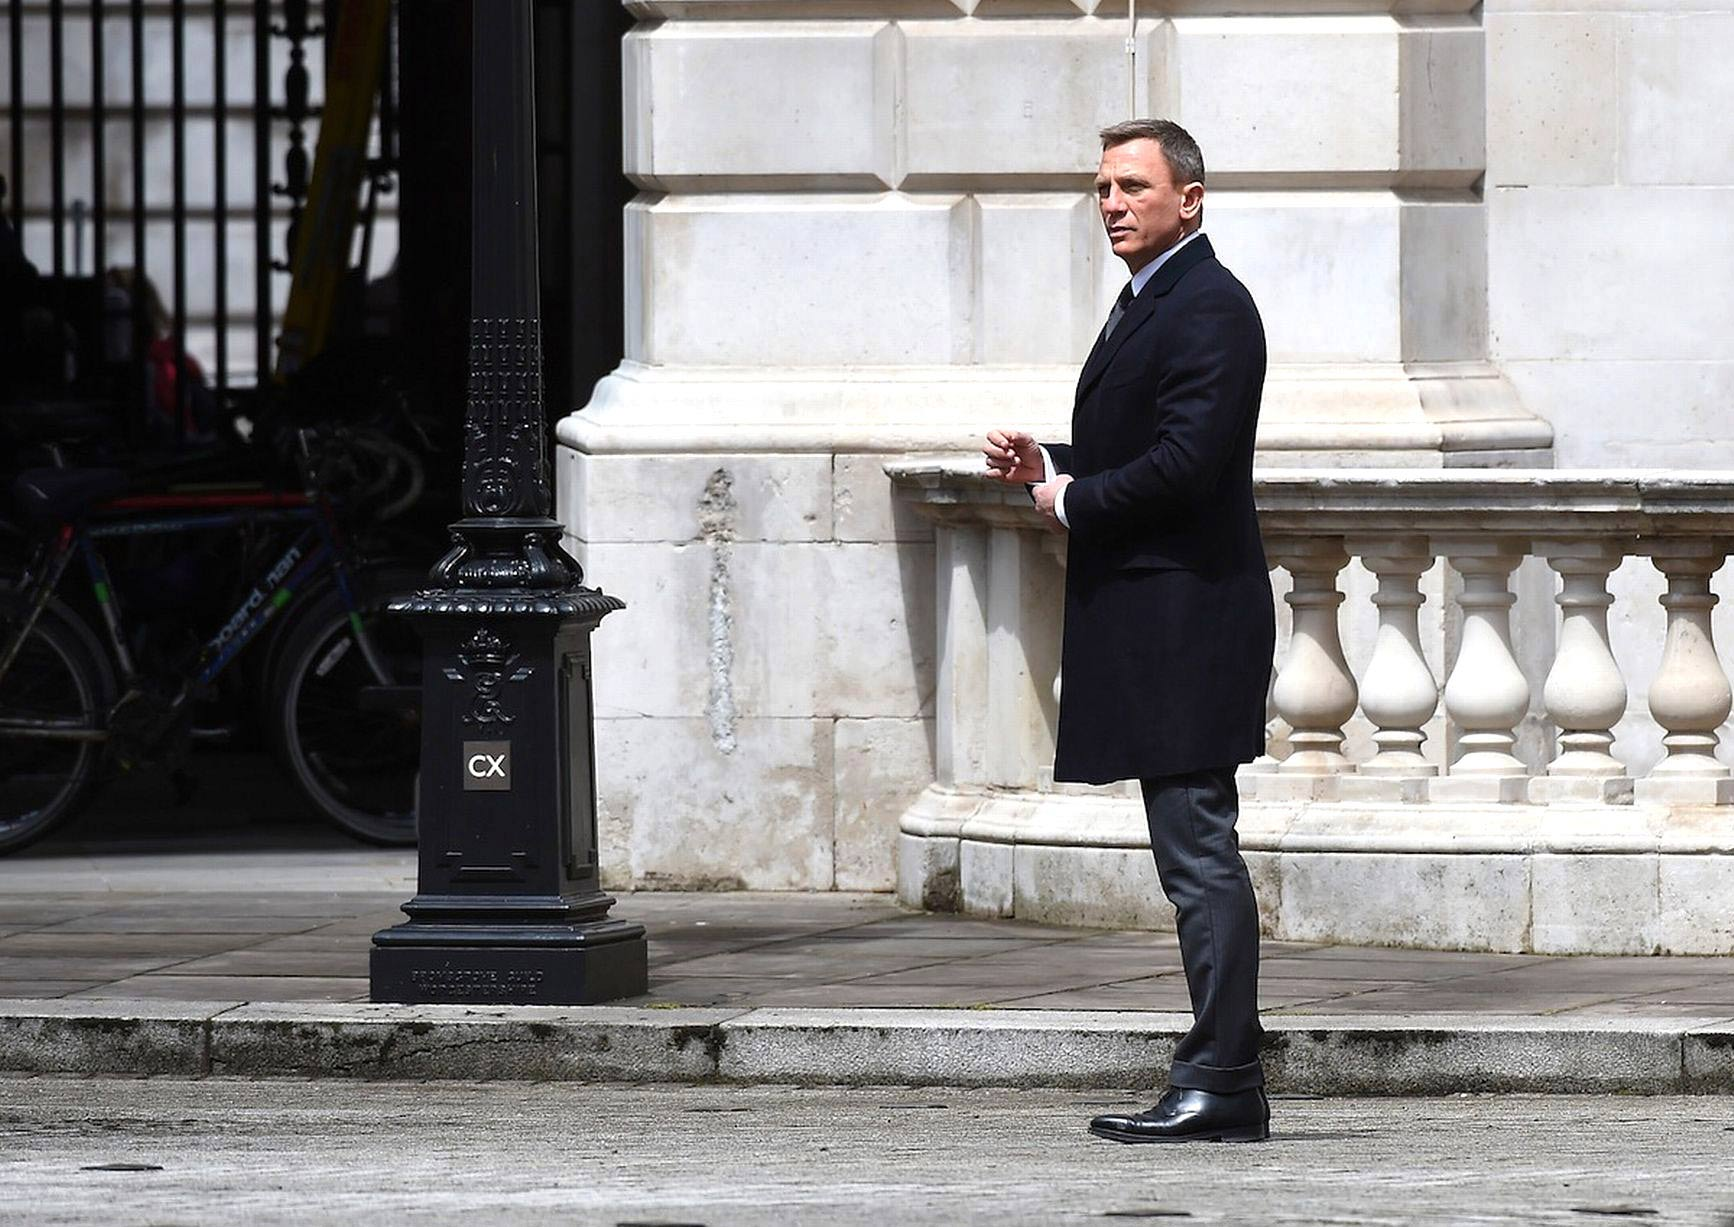 Daniel-craig-james-bond-spectre-movie-look-suit-grey-overcoat